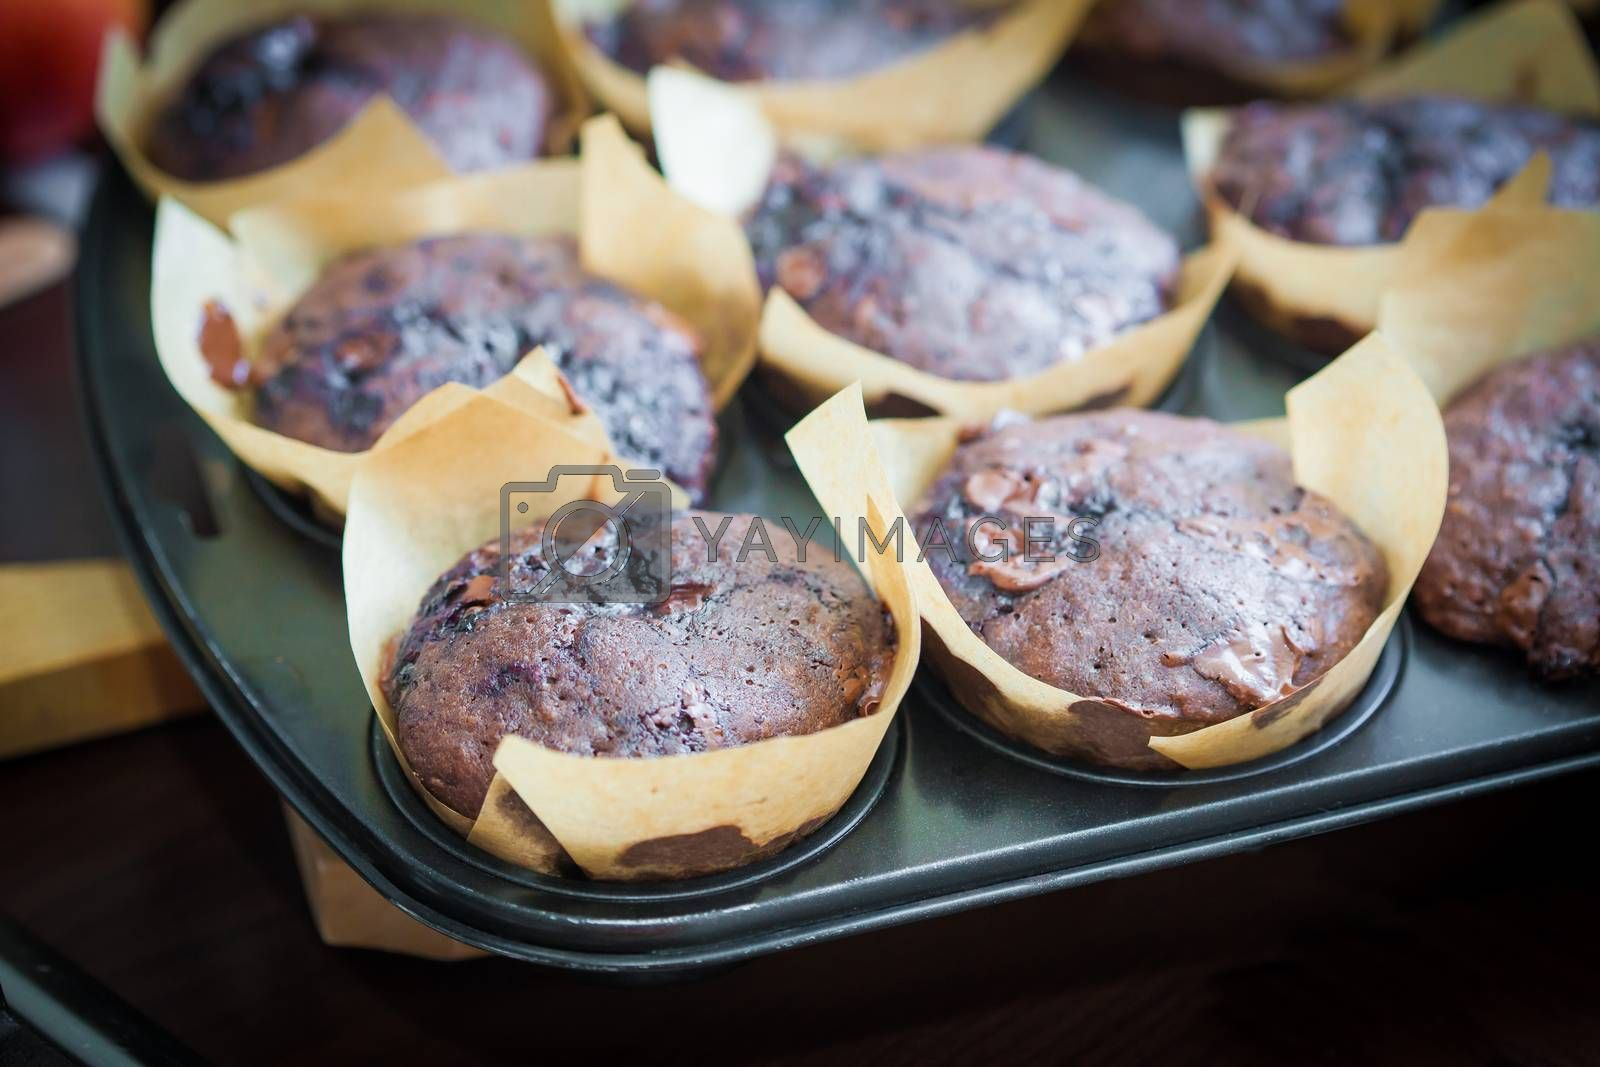 Chocolate muffins with blueberry on cooking pan by PixAchi